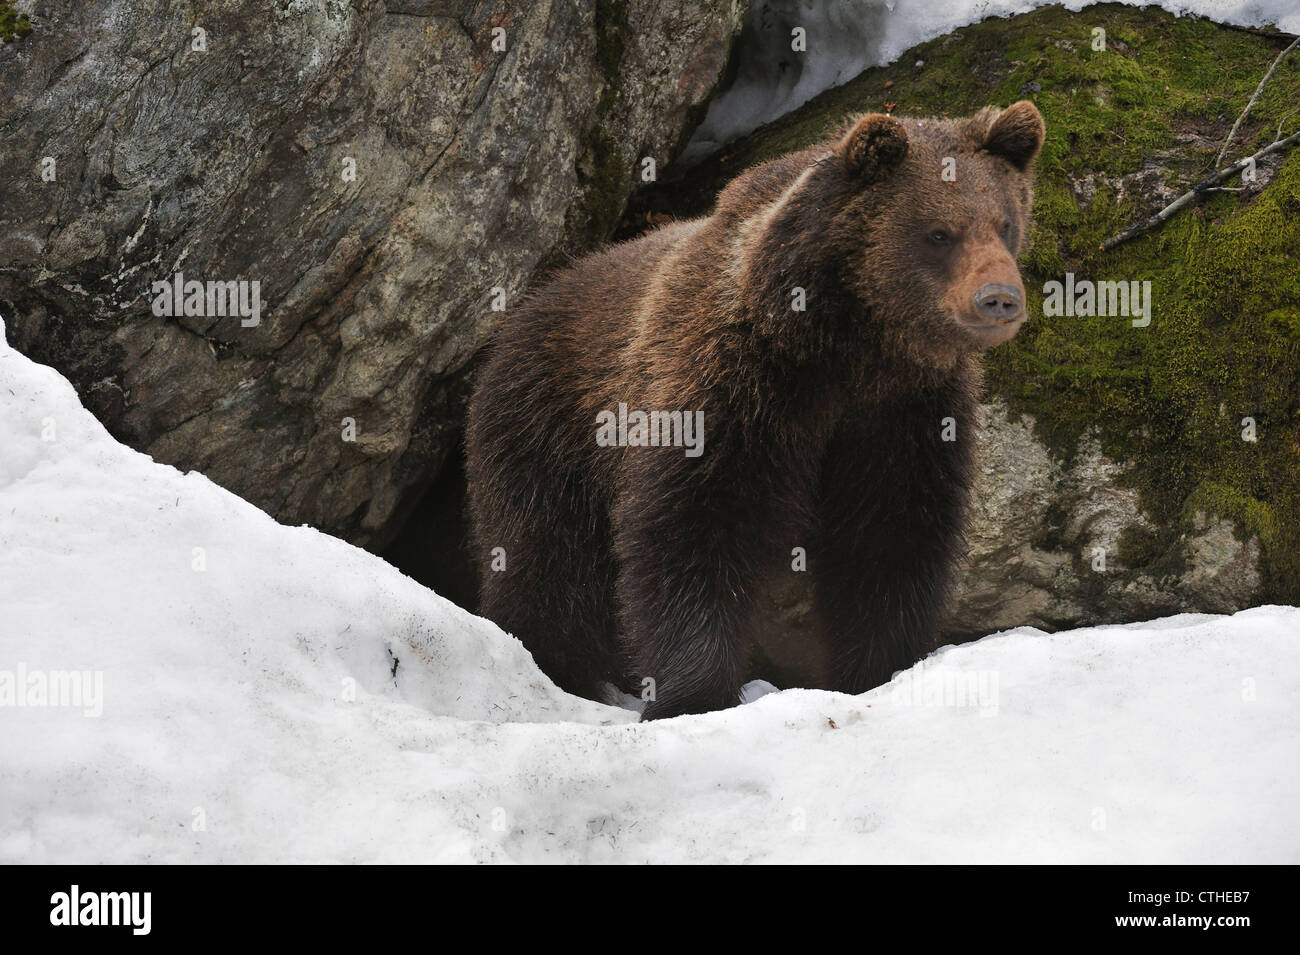 Eurasian brown bear (Ursus arctos arctos) in the snow in early spring emerging from den among rocks in woodland, - Stock Image